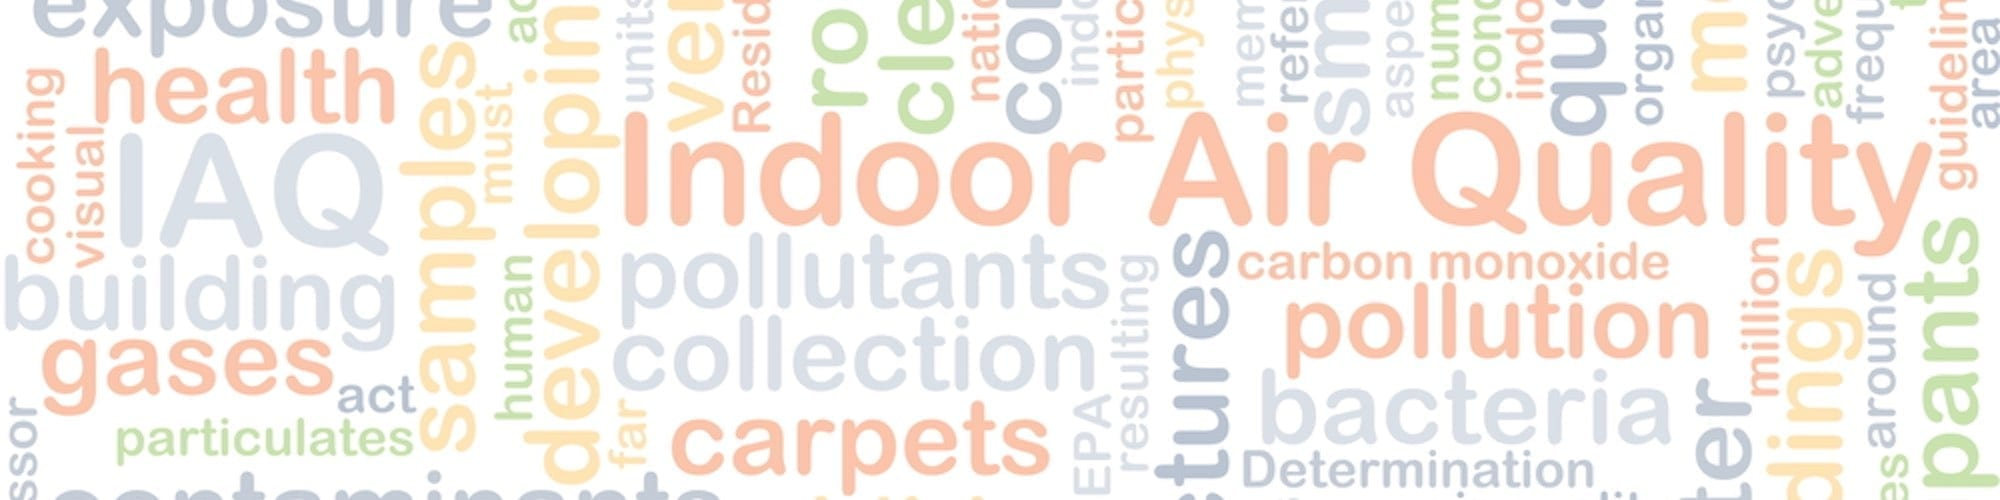 What is IAQ? Indoor Air Quality?